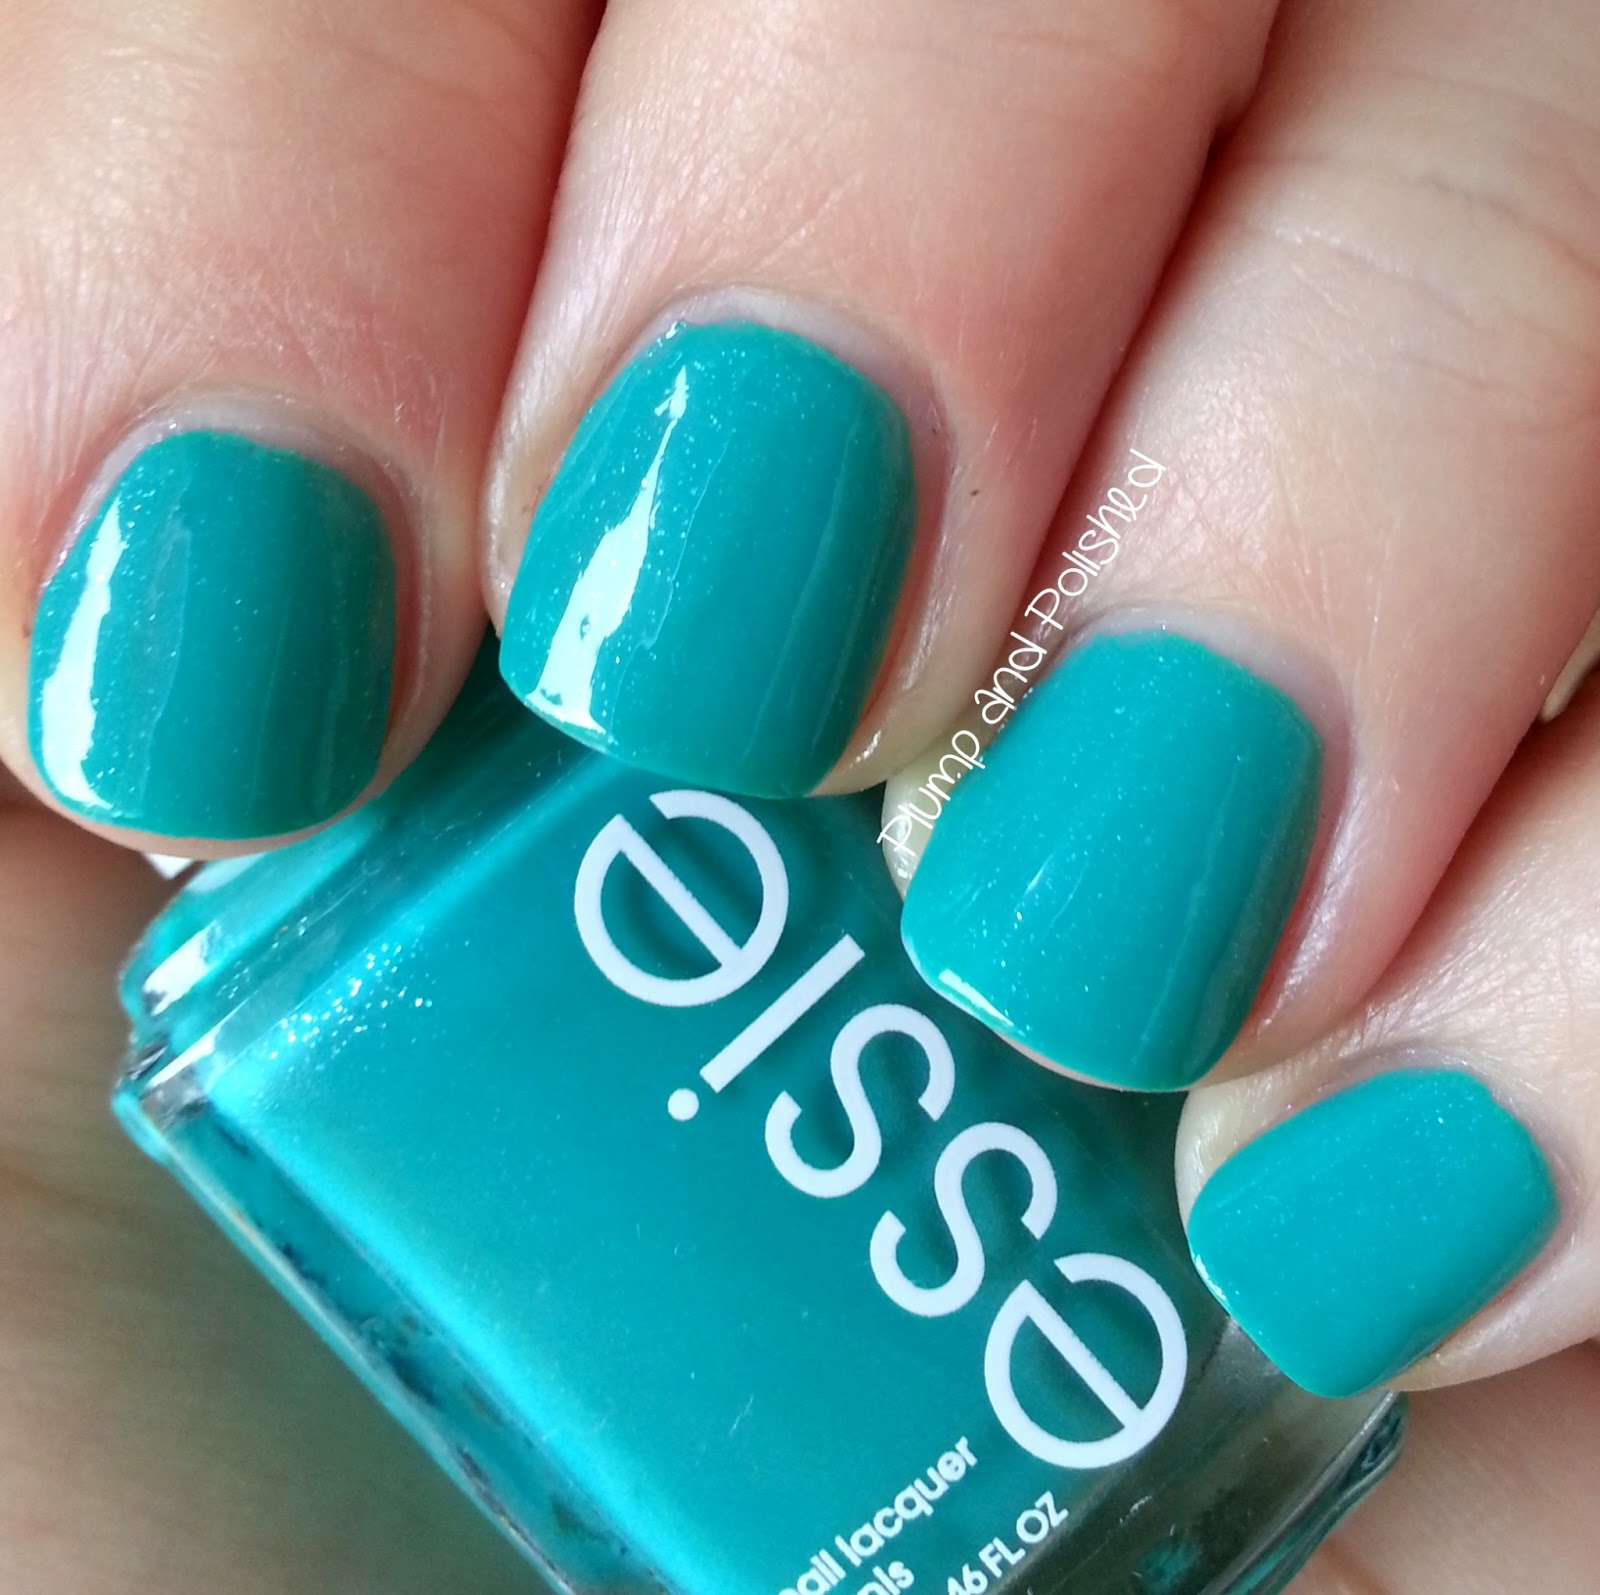 Plump and Polished: Essie Naughty Nautical Summer 2013 Collection